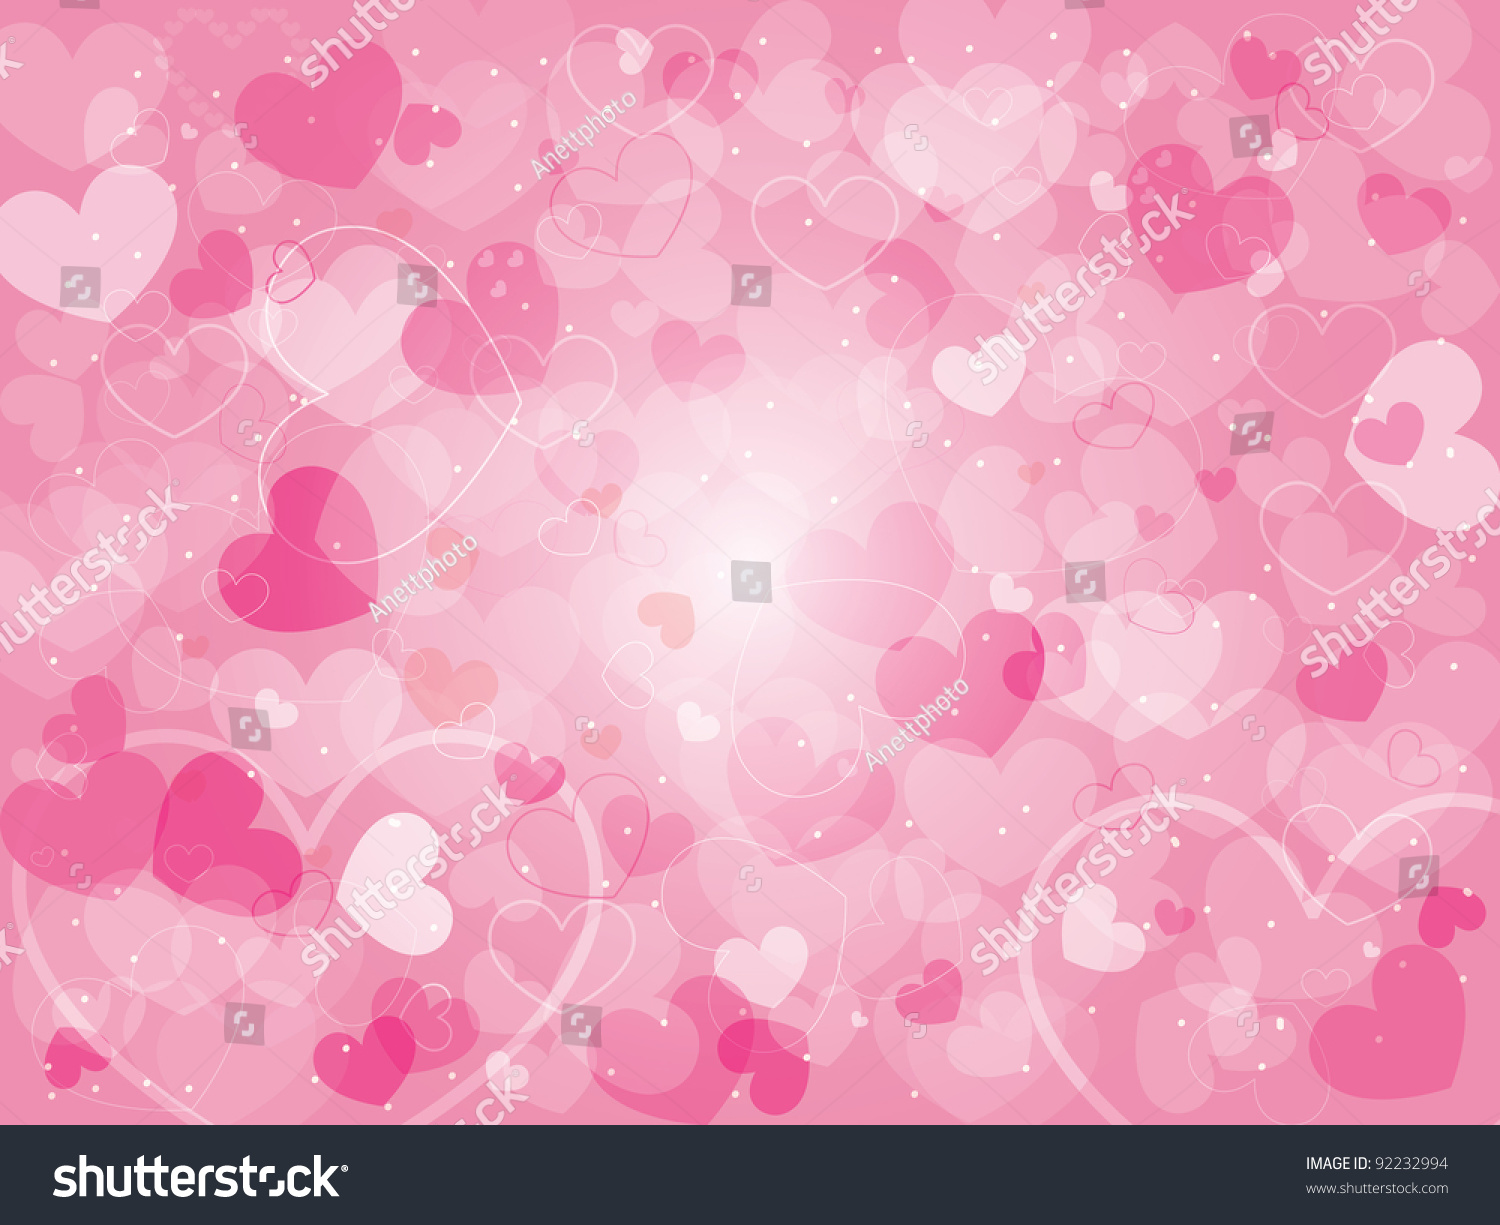 valentines day background clipart - photo #27